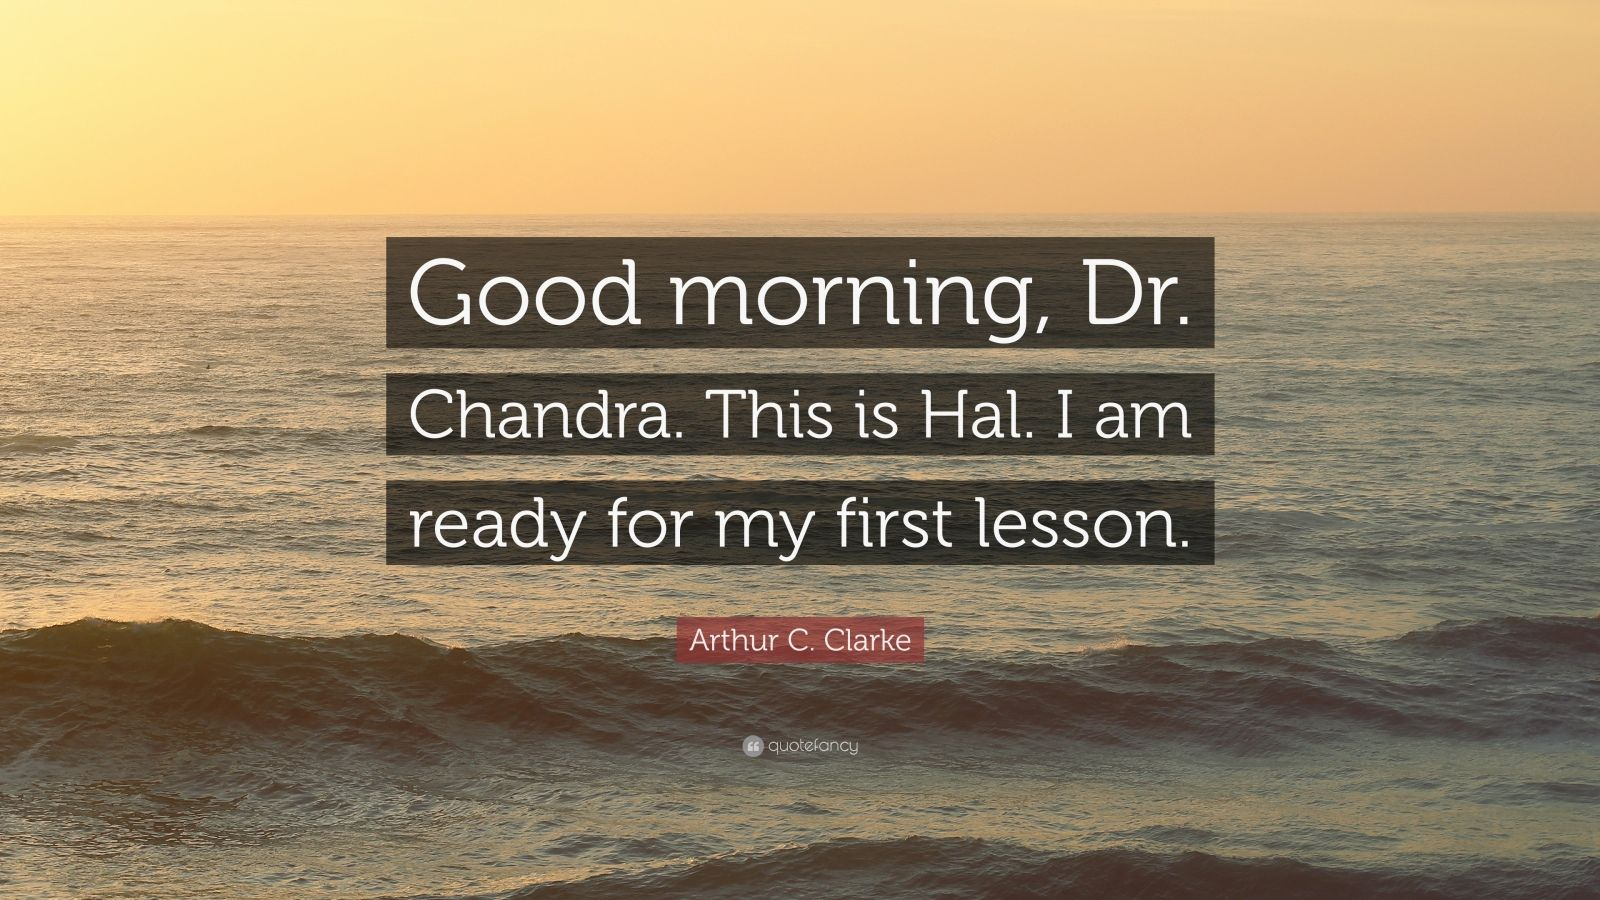 """Arthur C. Clarke Quote: """"Good morning, Dr. Chandra. This is Hal. I am ready for my first lesson."""""""